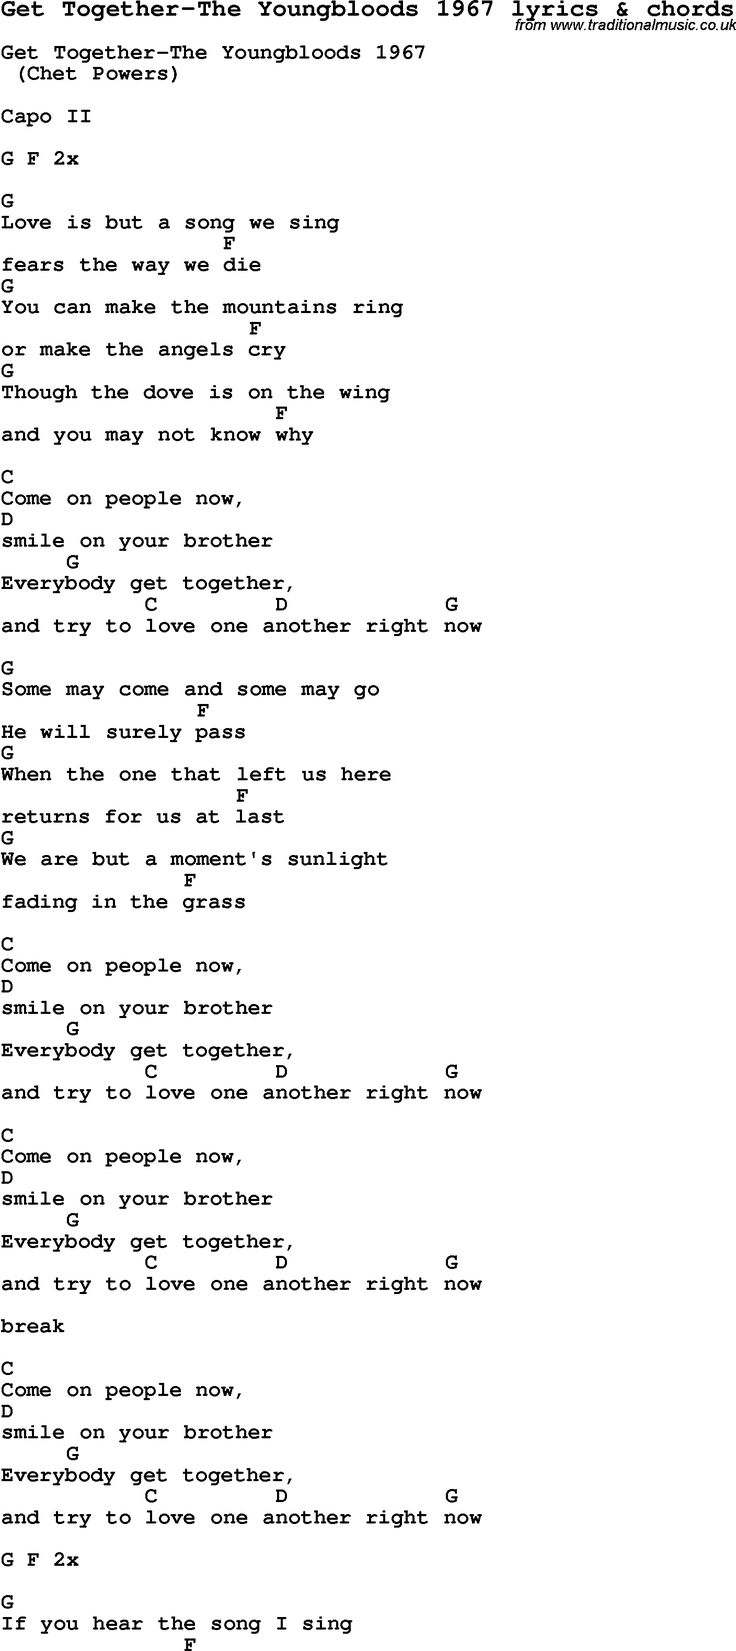 136 best can you hear the music images on pinterest music cool love song lyrics for get together the youngbloods 1967 with chords for ukulele hexwebz Image collections